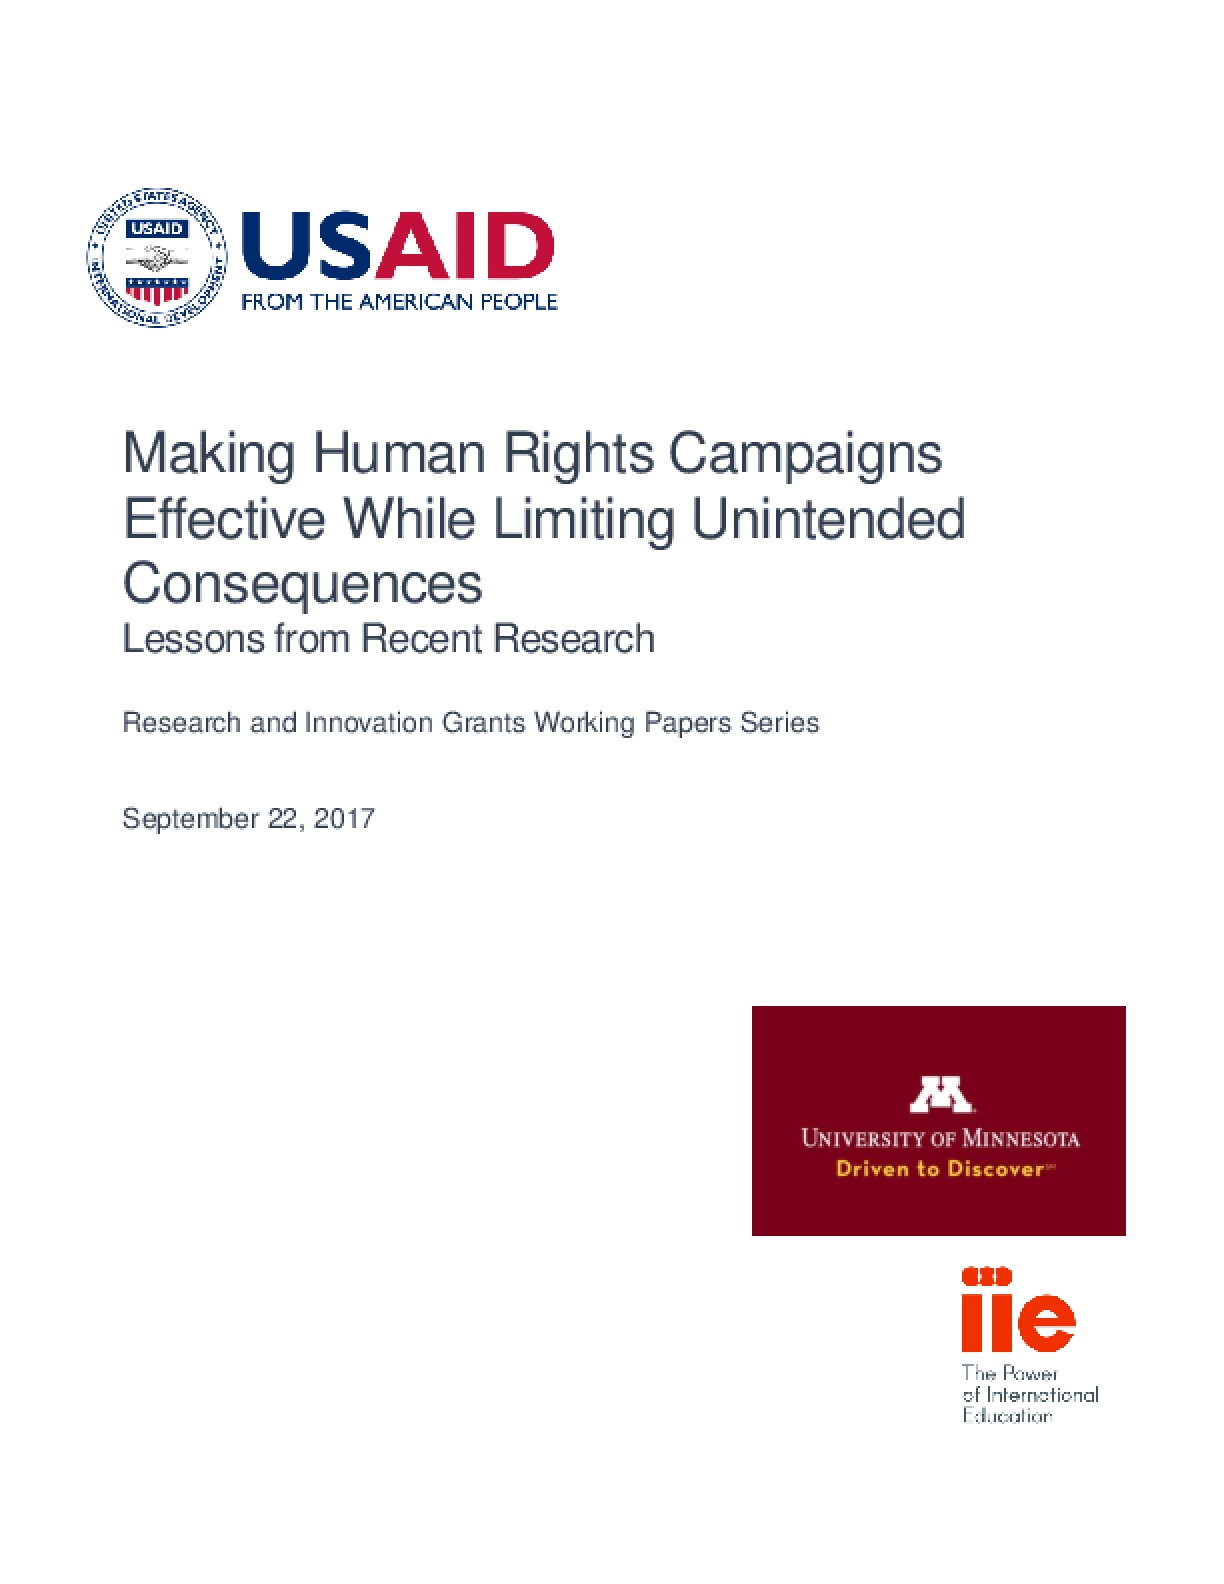 Making Human Rights Campaigns Effective While Limiting Unintended Consequences (2017)